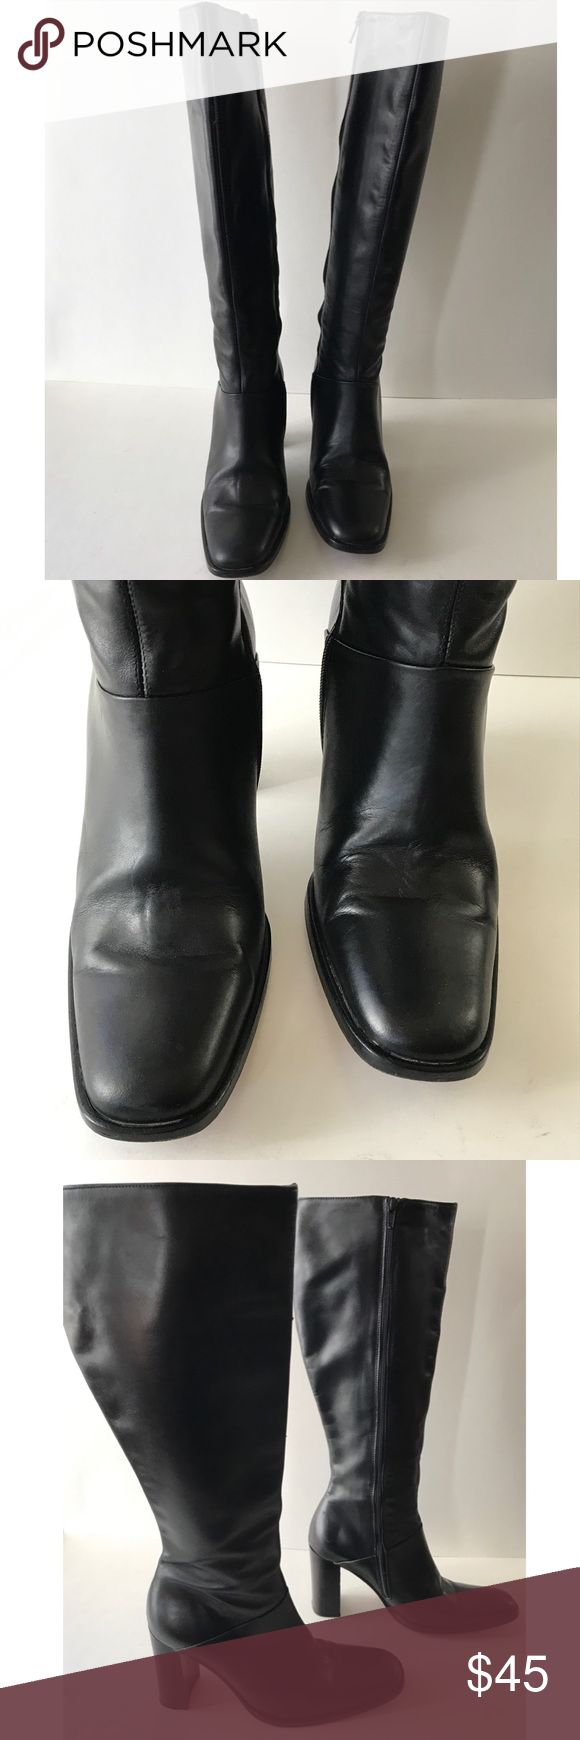 J. Crew Black Leather Round Toe Side Zip Boot J. Crew Black Leather Knee Boots  Round Toe  Side Zip  Leather Upper  Leather Lining  Heel Height 3-1/2 inch  Size 7-1/2M J. Crew Shoes Heeled Boots